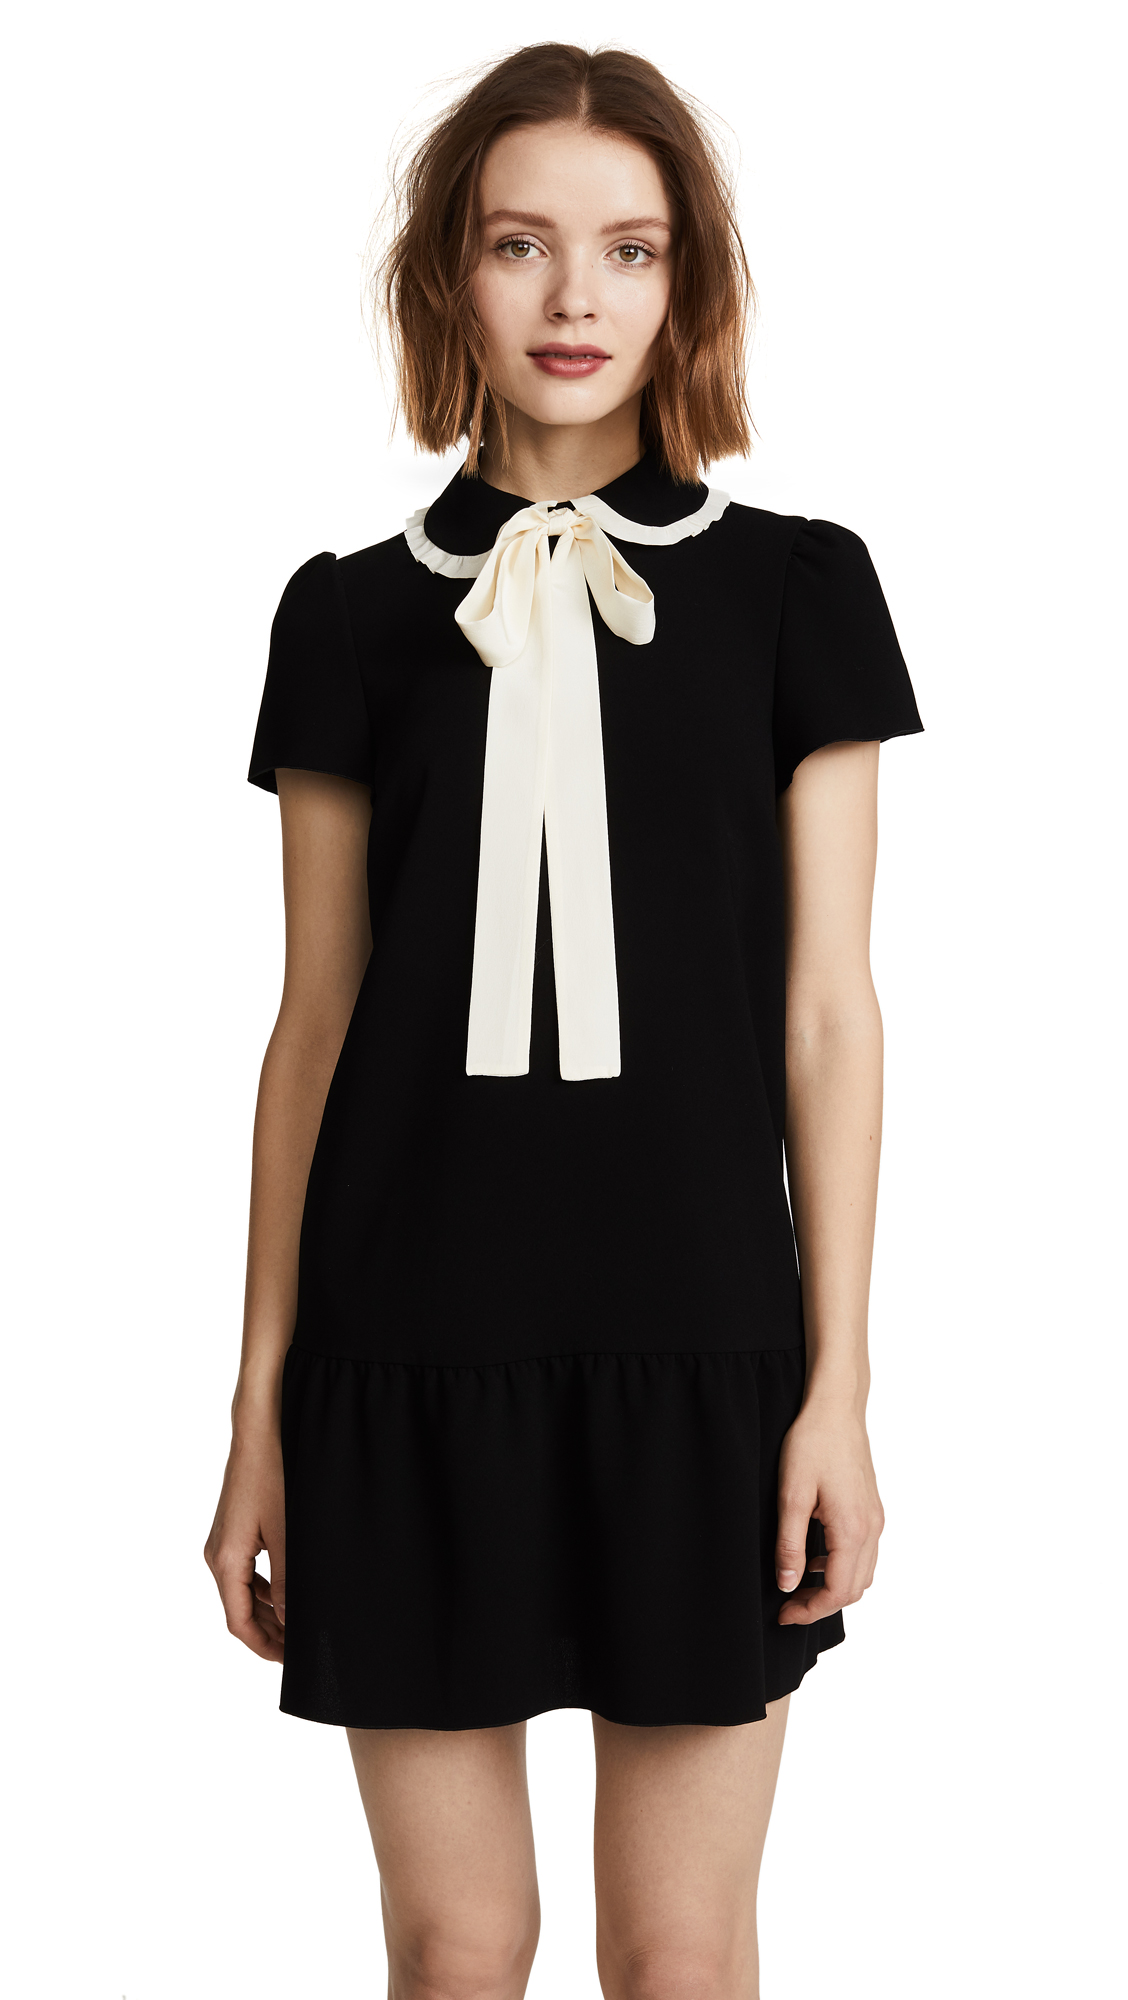 RED Valentino Collared Tie Neck Dress - Nero/Avorio